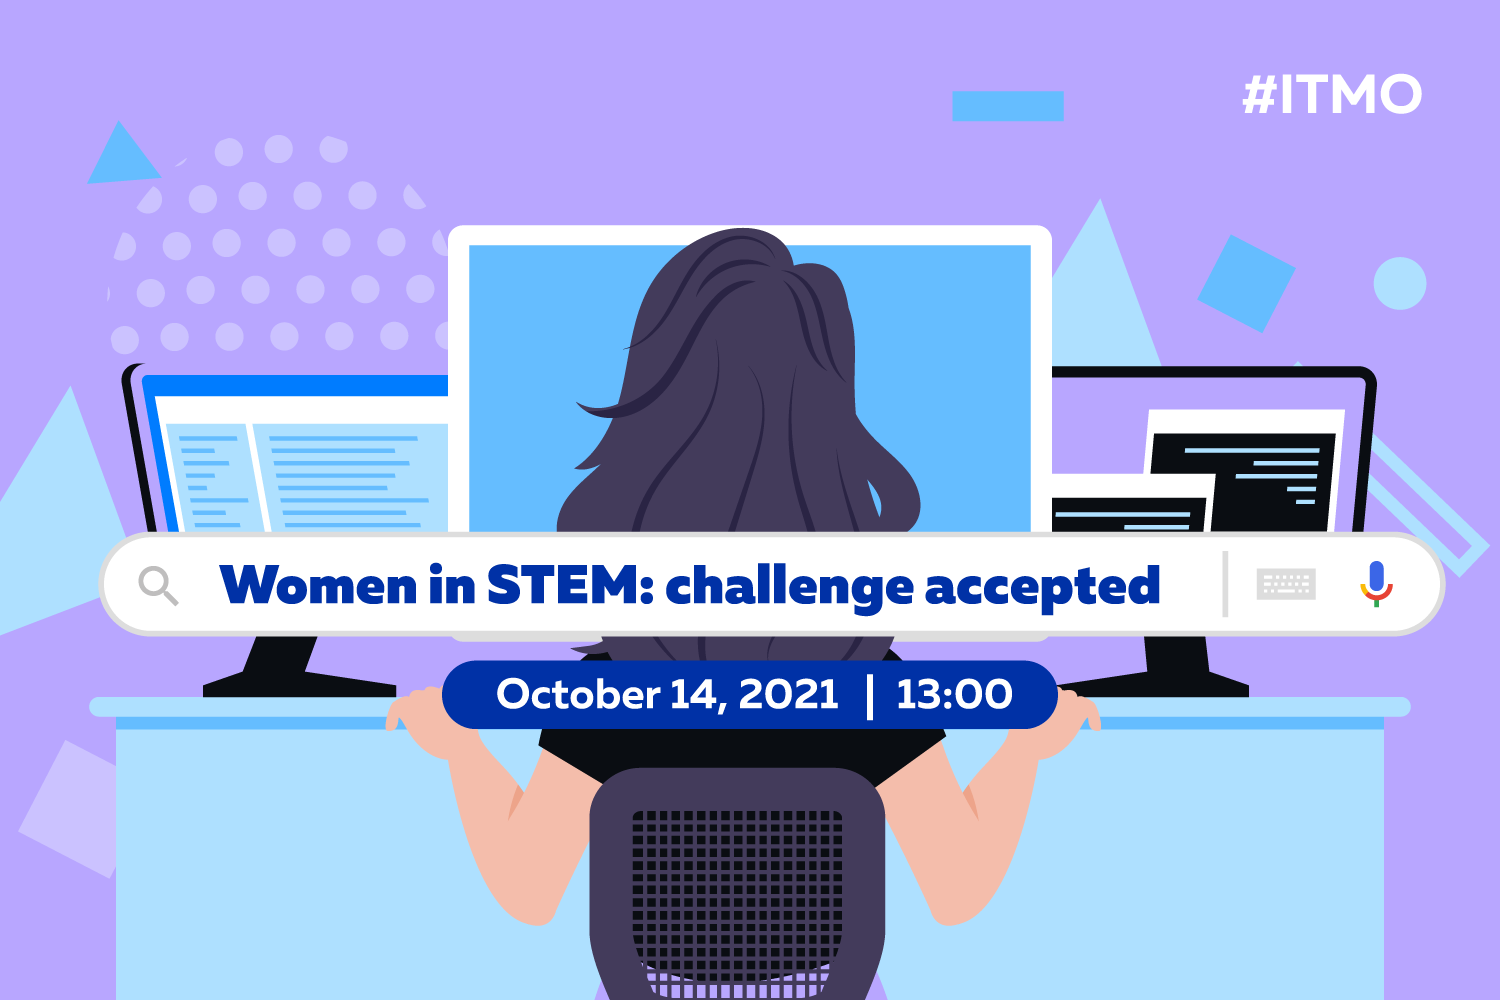 Online discussion – Women in STEM: challenge accepted